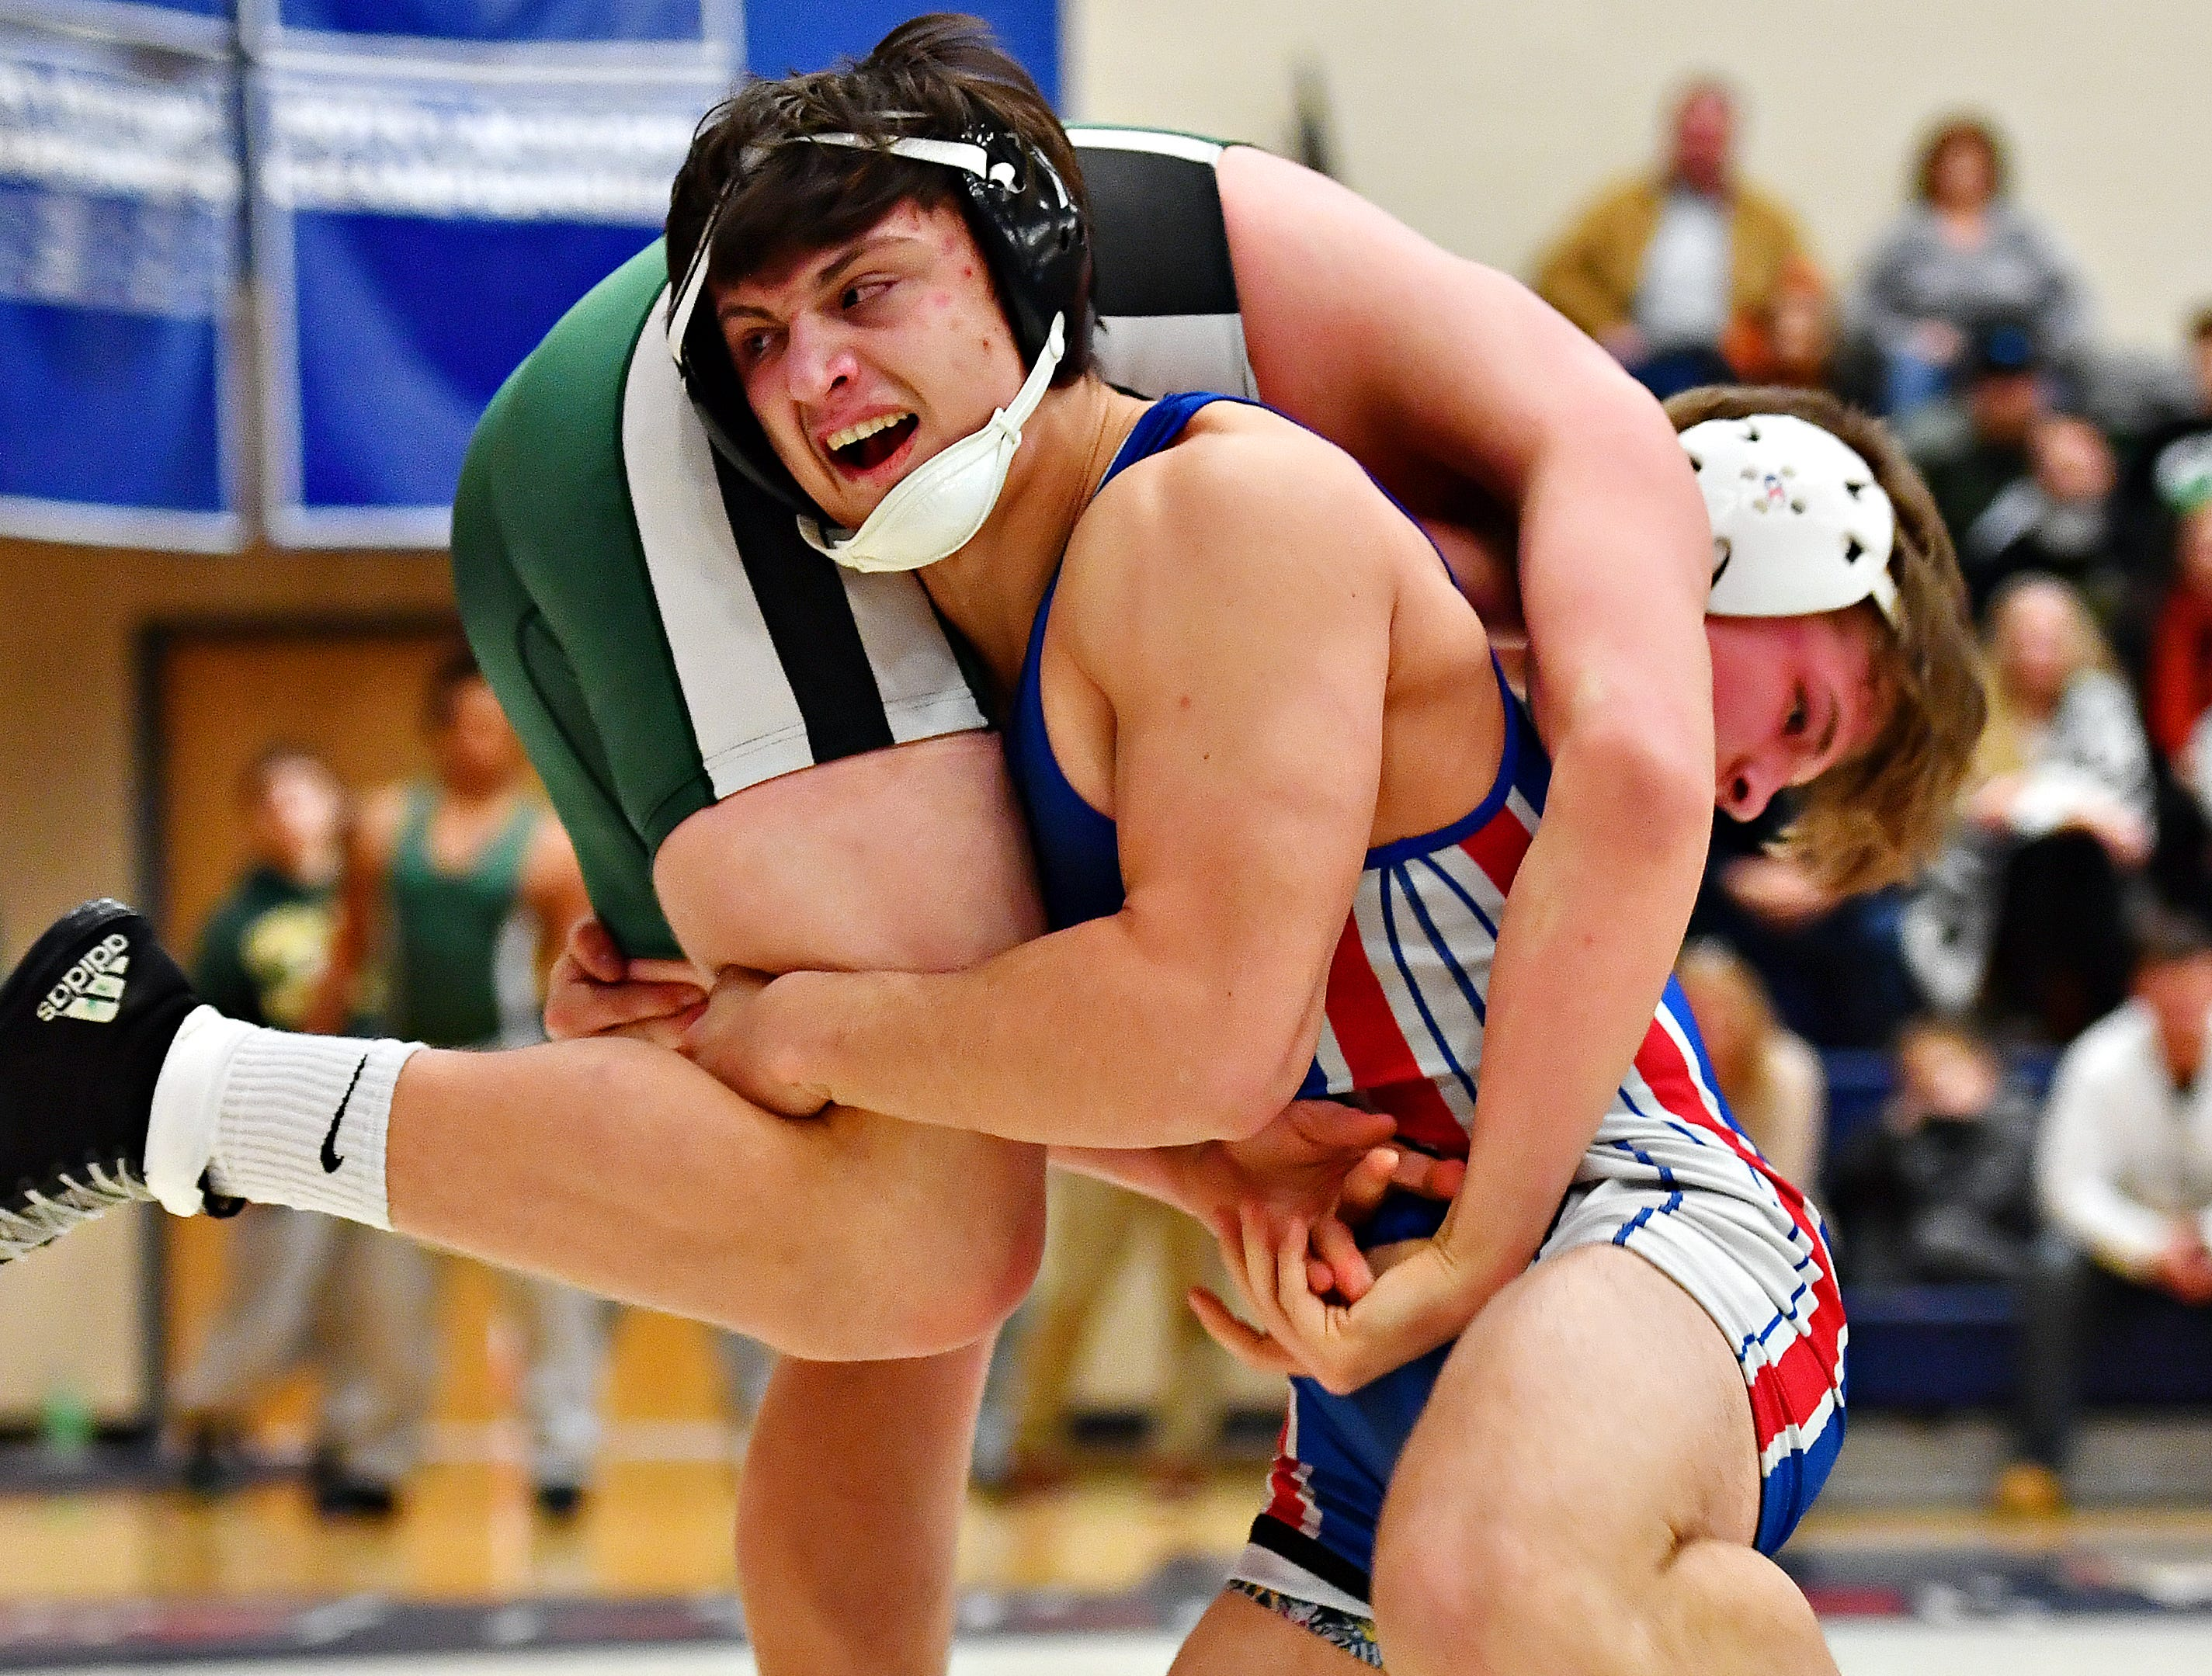 Dallastown's Franklin Klinger, front, wrestles Central Dauphin's Nathaniel Mosey in the 182 pound weight class during District 3, Class 3A wrestling semifinal action at Spring Grove Area High School in Jackson Township, Thursday, Jan. 31, 2019. Dawn J. Sagert photo